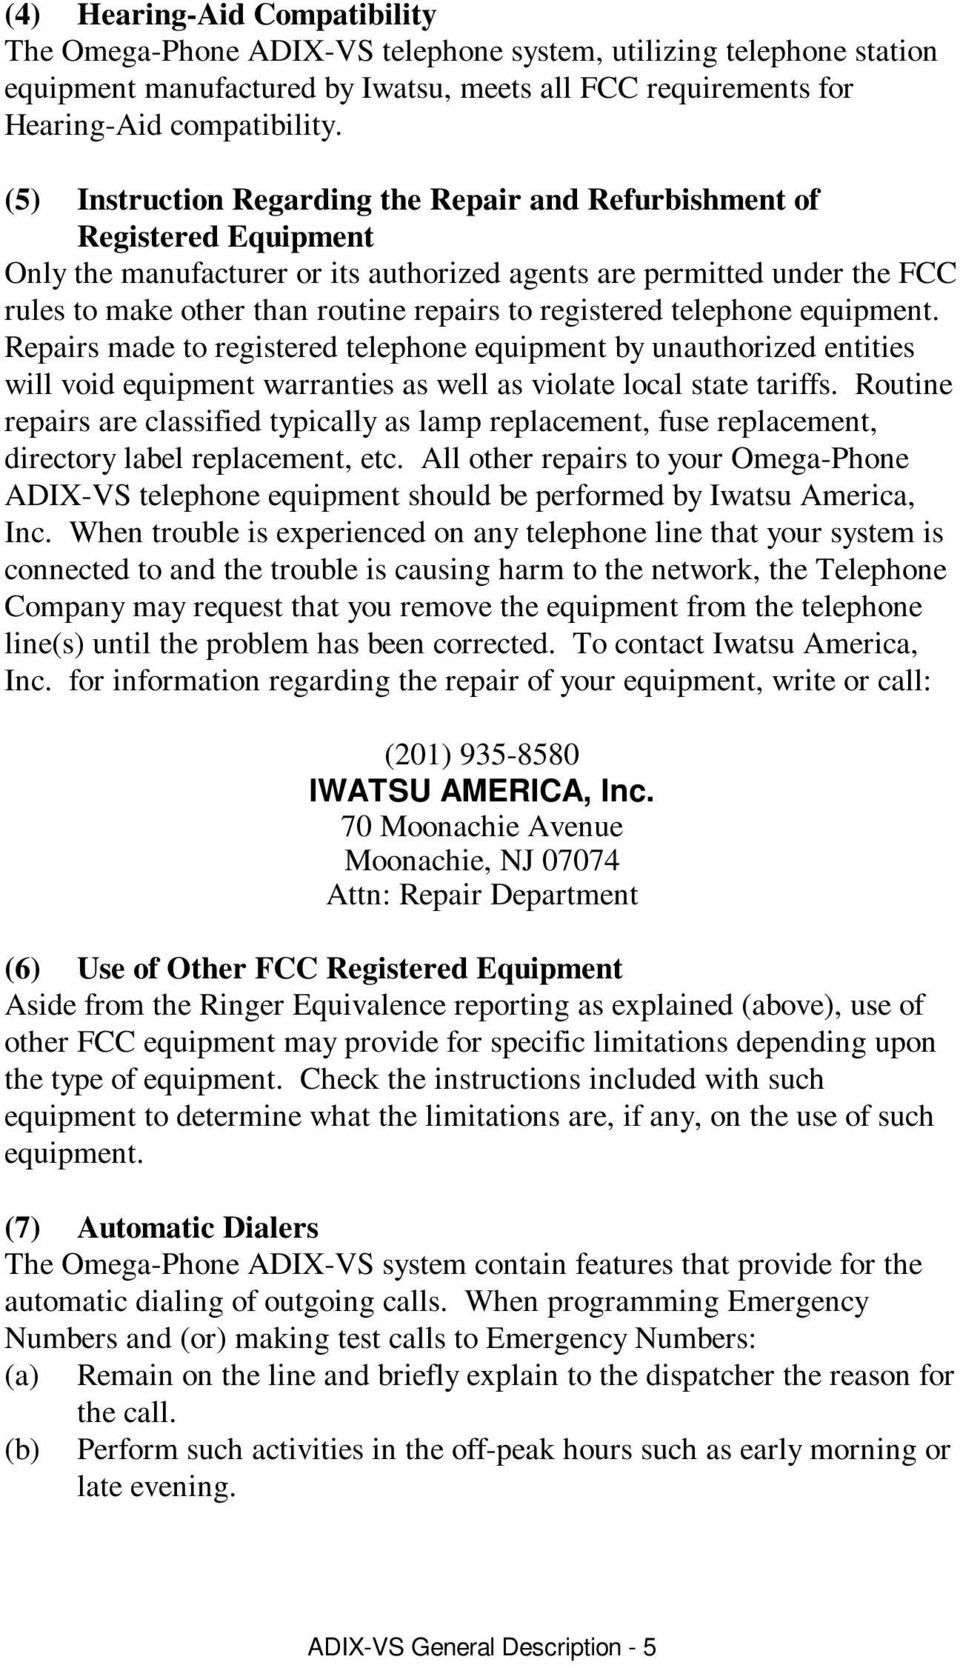 registered telephone equipment. Repairs made to registered telephone equipment by unauthorized entities will void equipment warranties as well as violate local state tariffs.